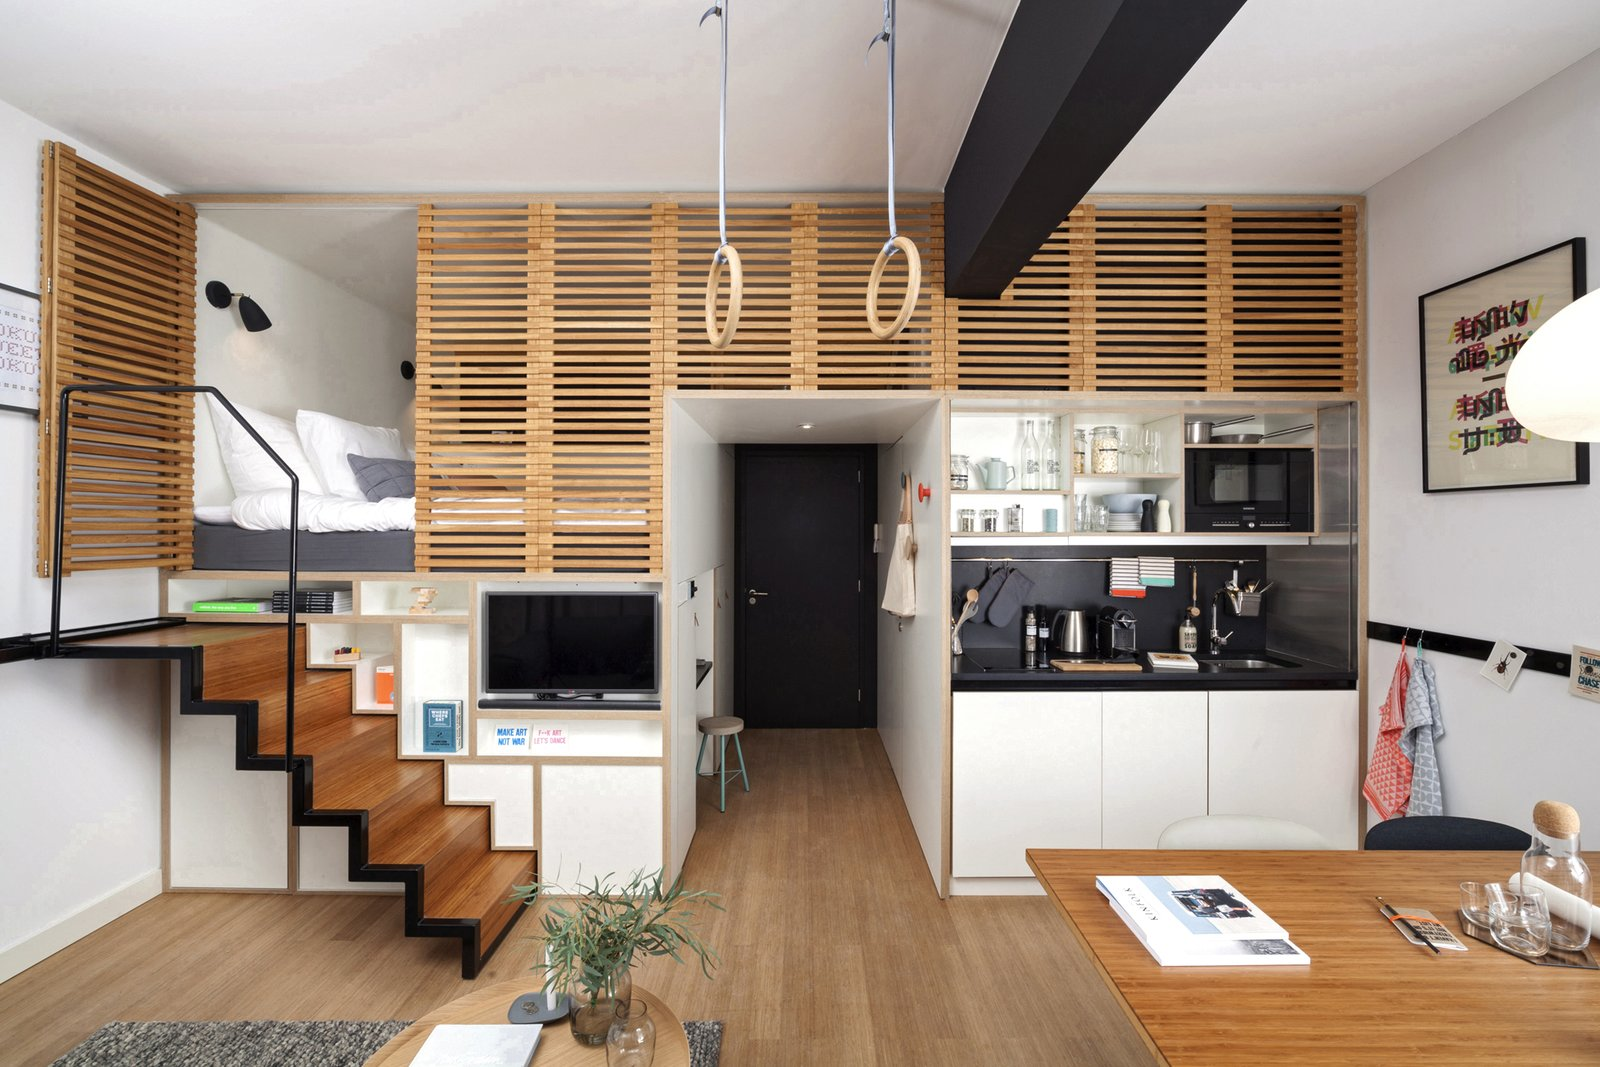 Concrete Amsterdam Zoku Loft p 15  Photo 15 of 16 in Gestalten's New Book Shows How to Transform Small Spaces Into Design Marvels